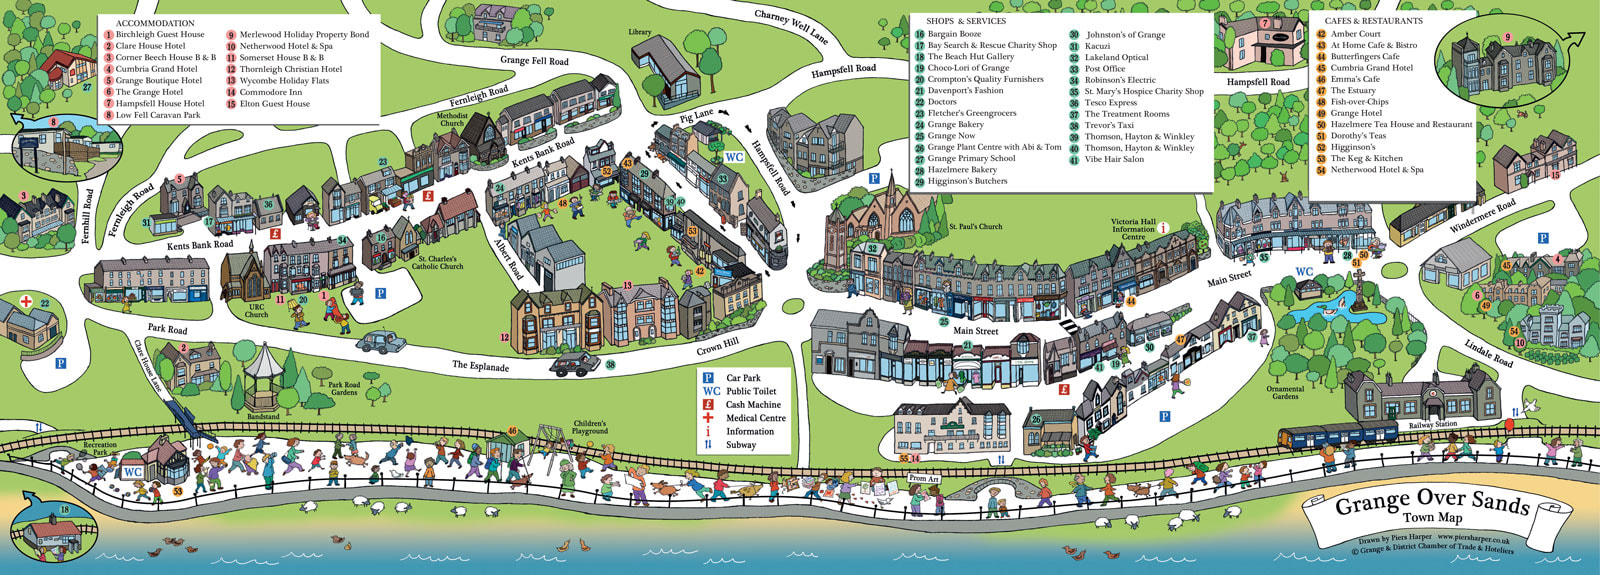 Grange-over-Sands Town Map